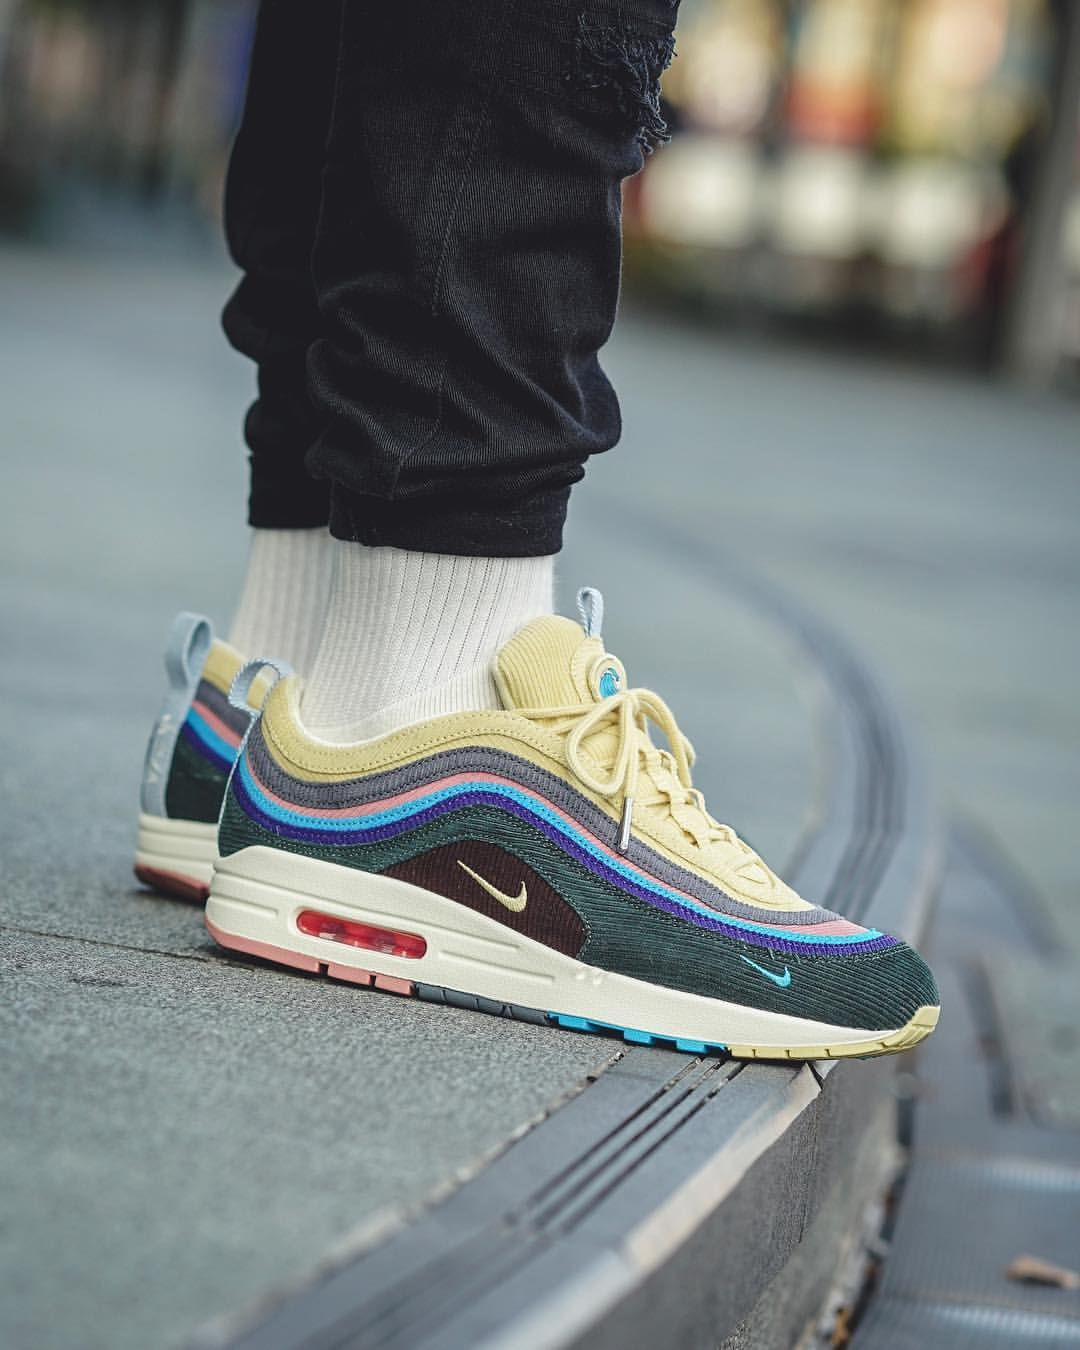 competitive price ae308 e05c7 Sean Wotherspoon x Nike Air Max 97/1 | Outfits | Sneakers ...